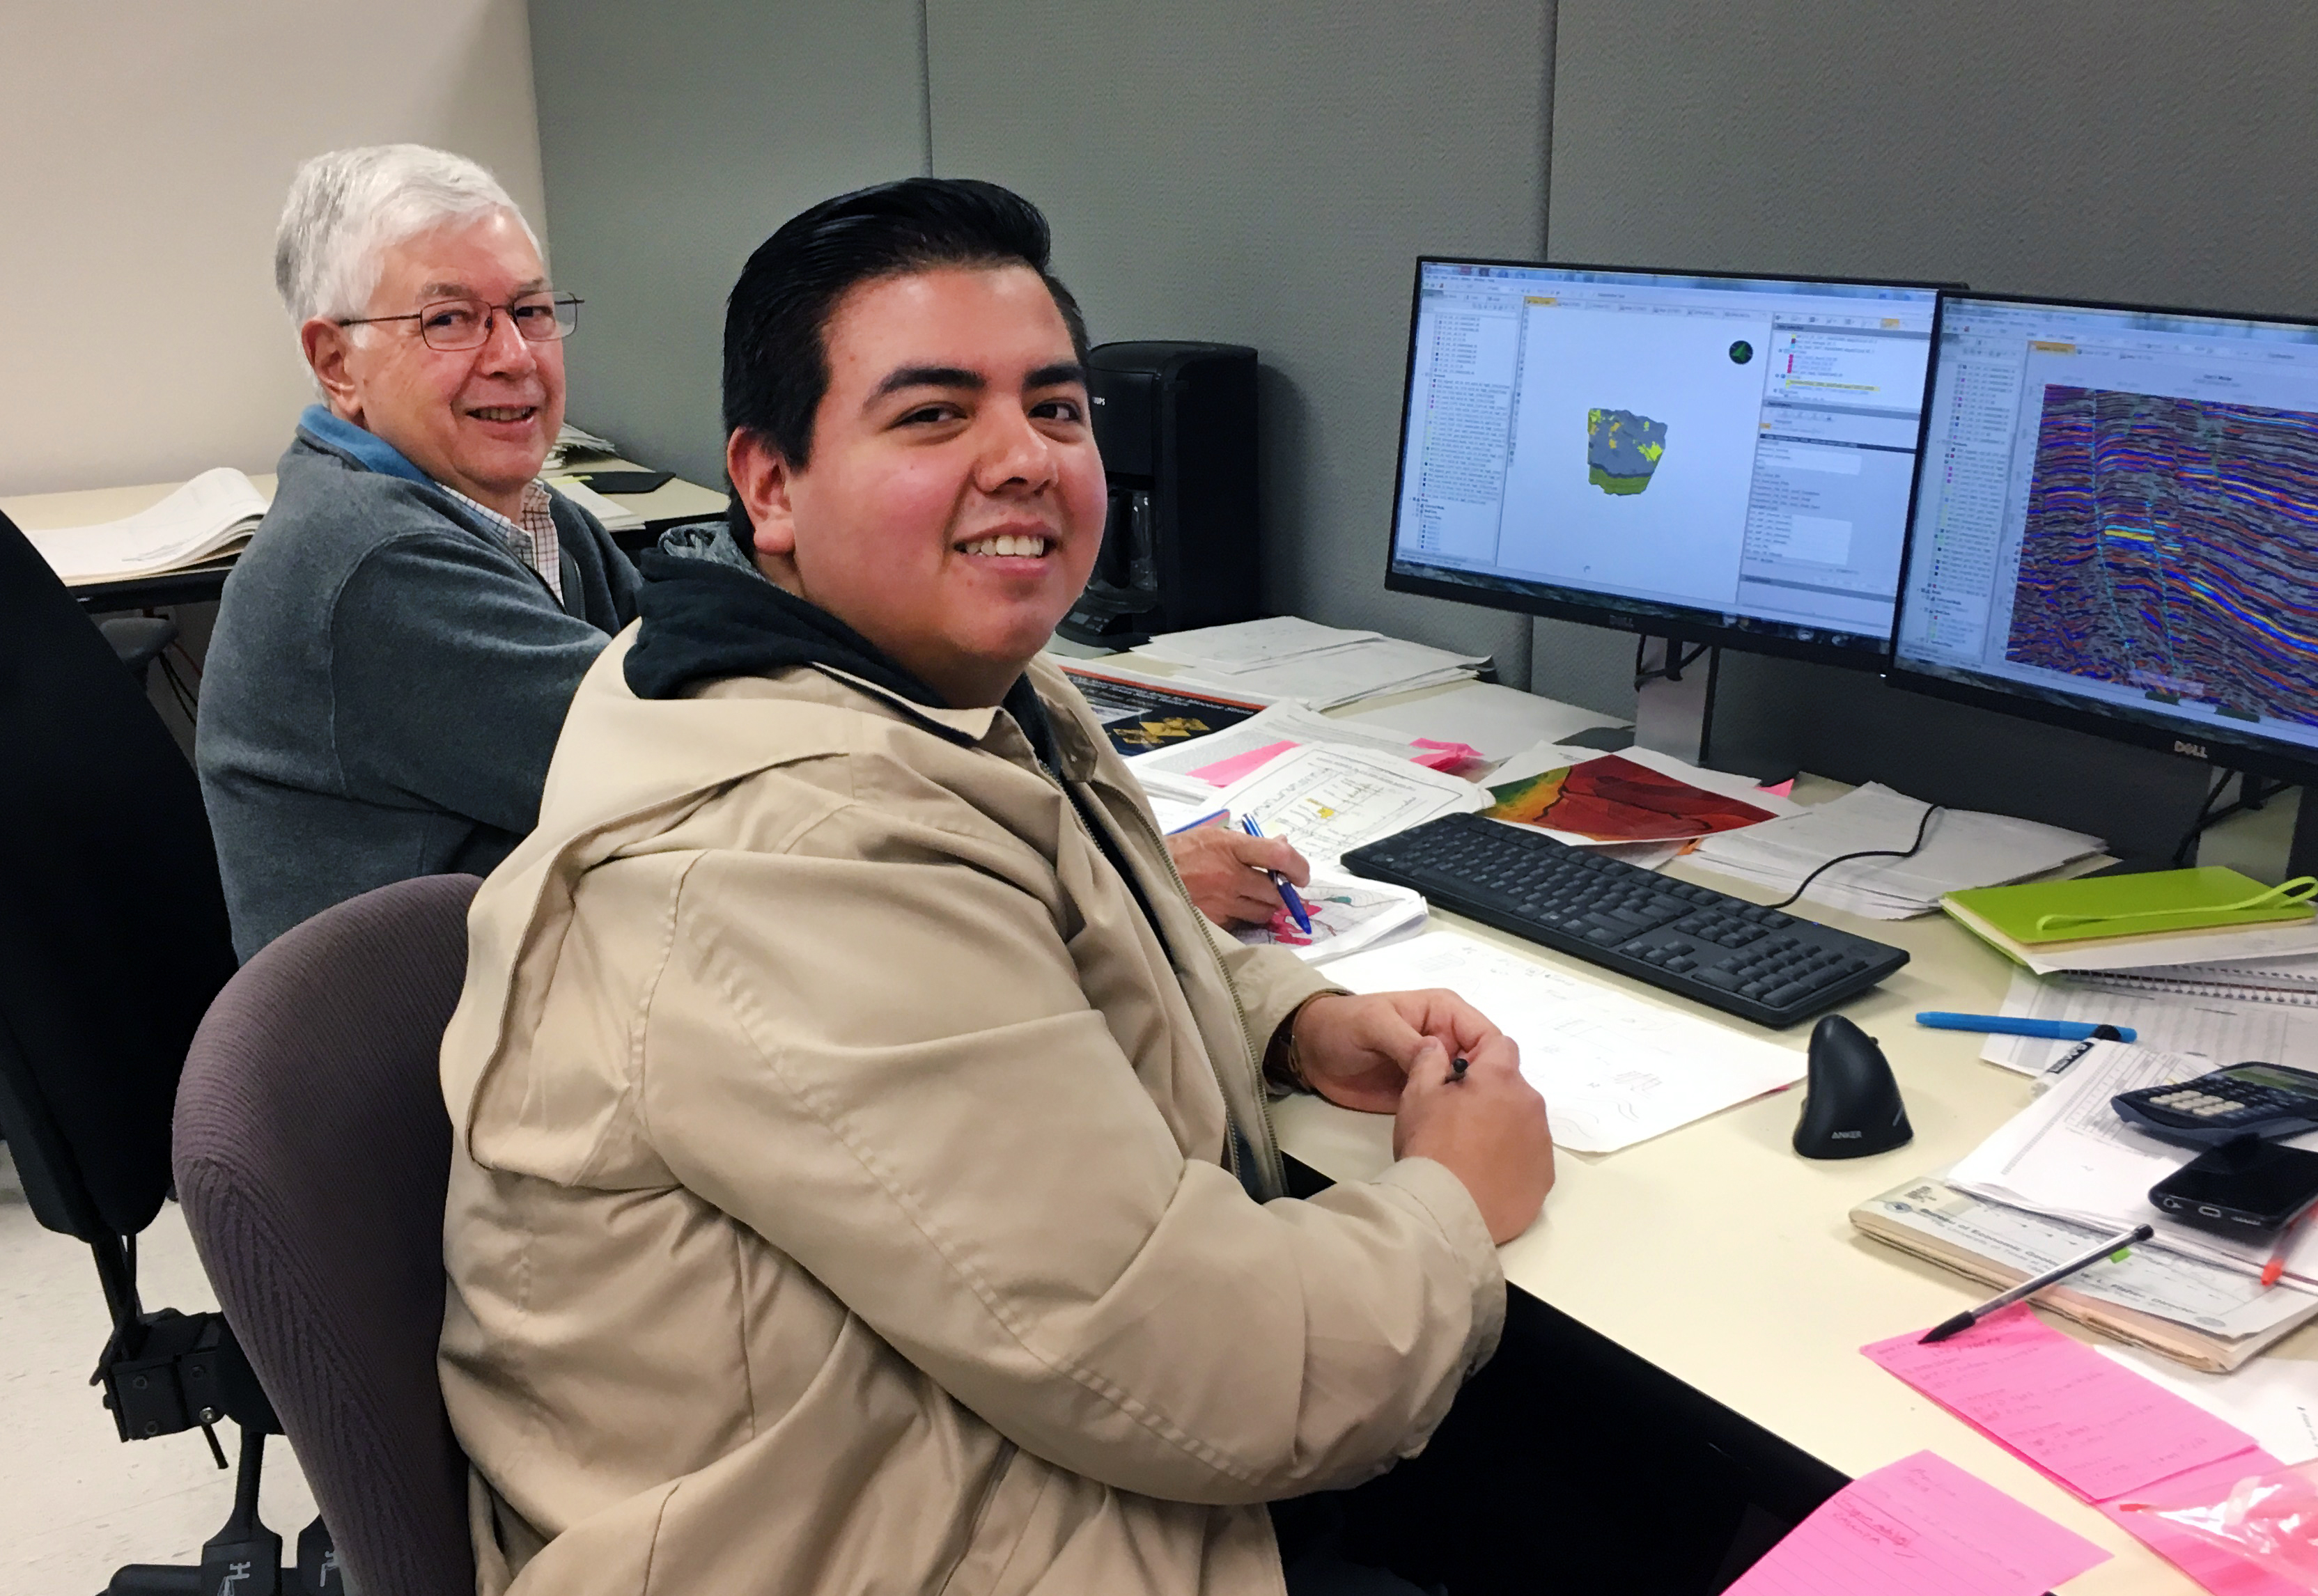 Rob Finley helps Izaak Ruiz troubleshoot subsurface modeling at the computer.